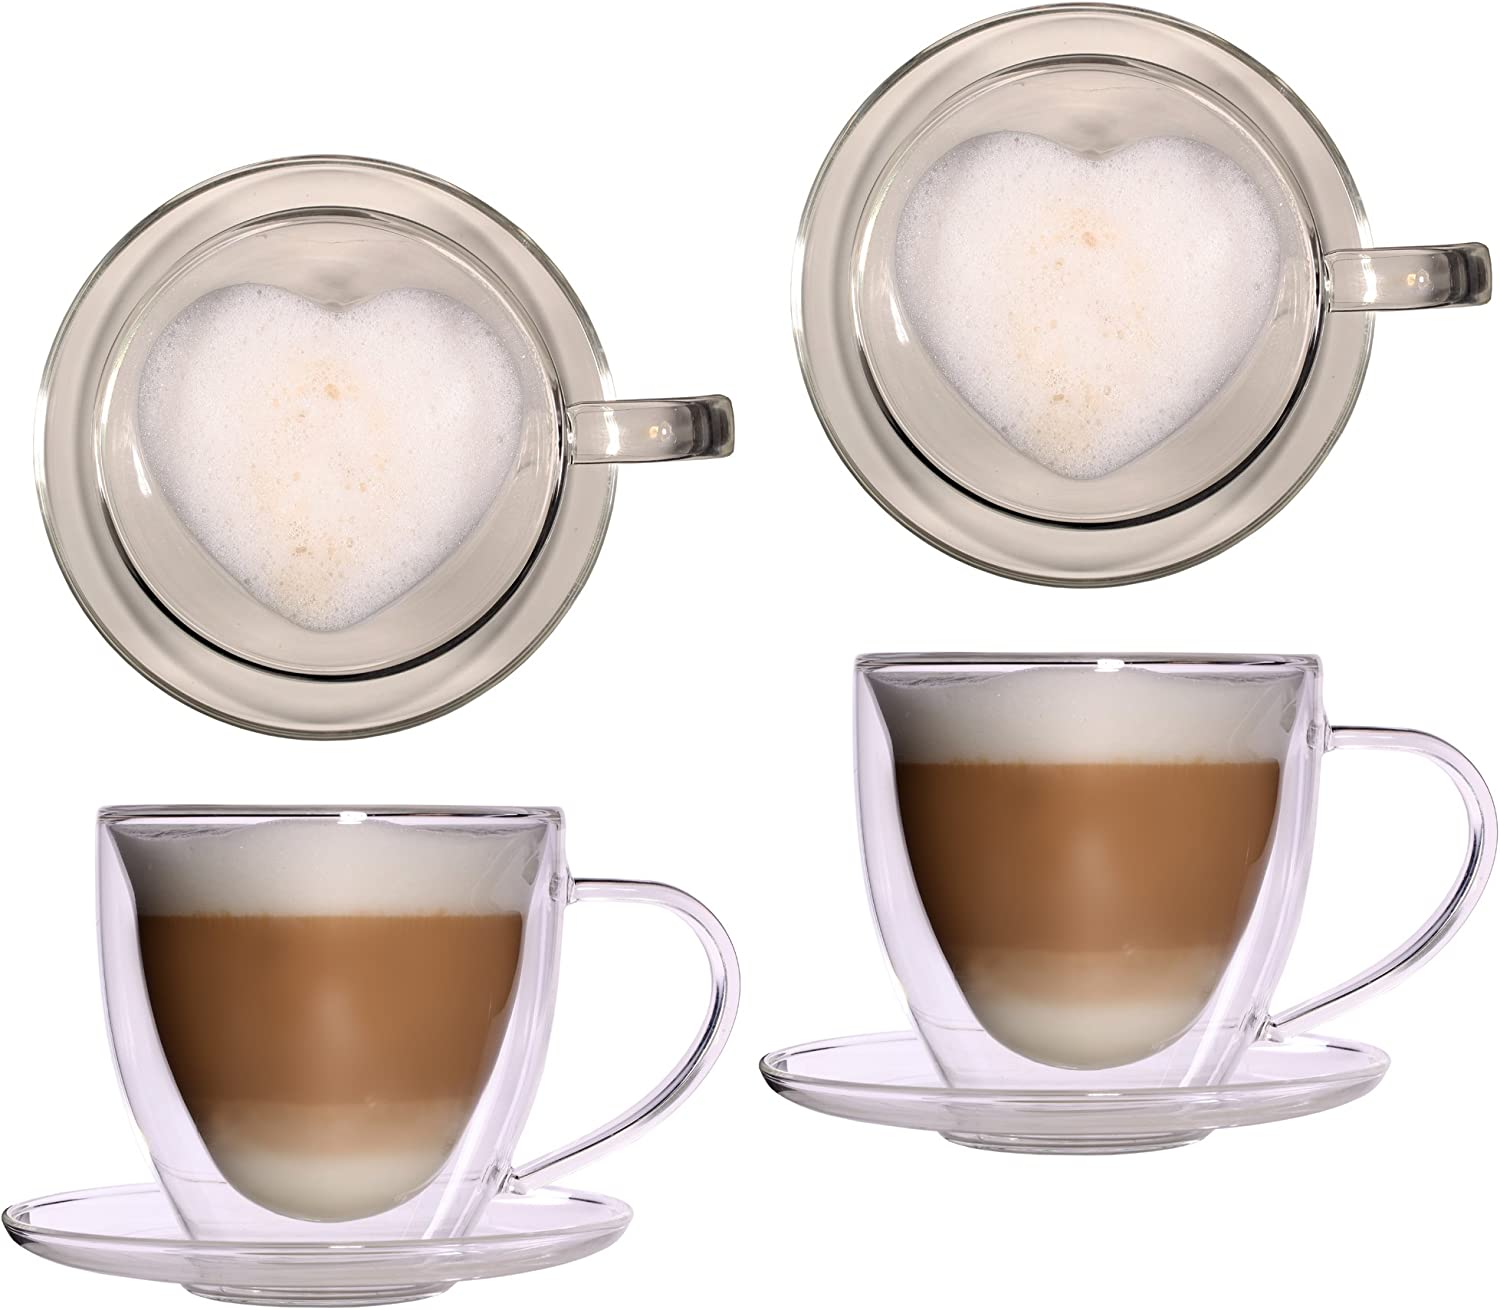 2x 350ml large double walled XL glass thermal heart cups with coasters noble and extra large glass teacup coffee cup with floating effect, glass